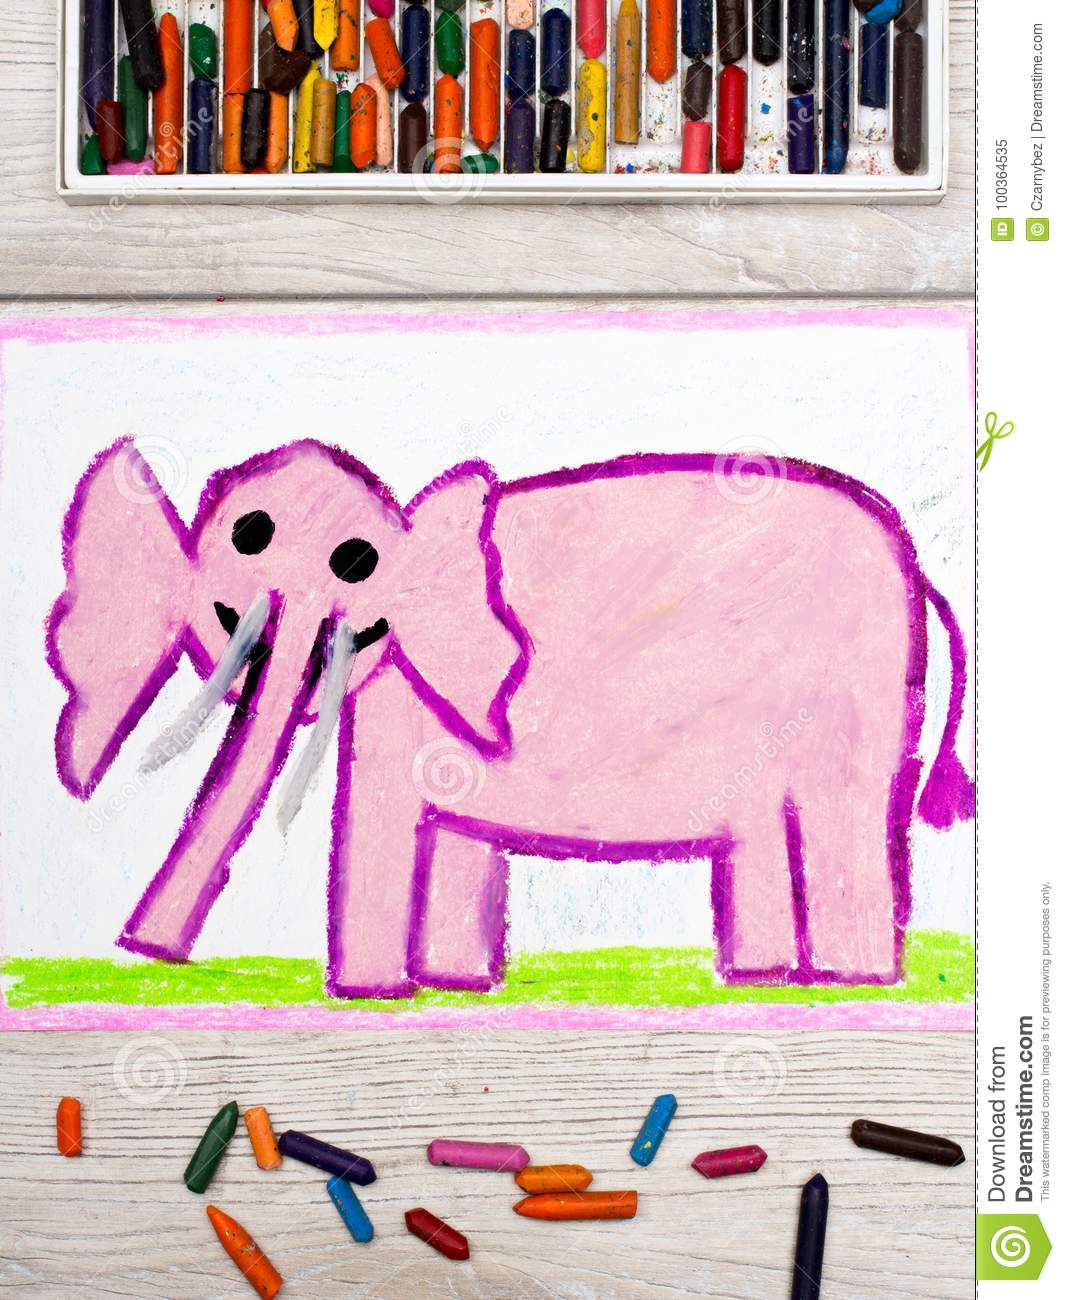 Drawing: Smiling pink elephant